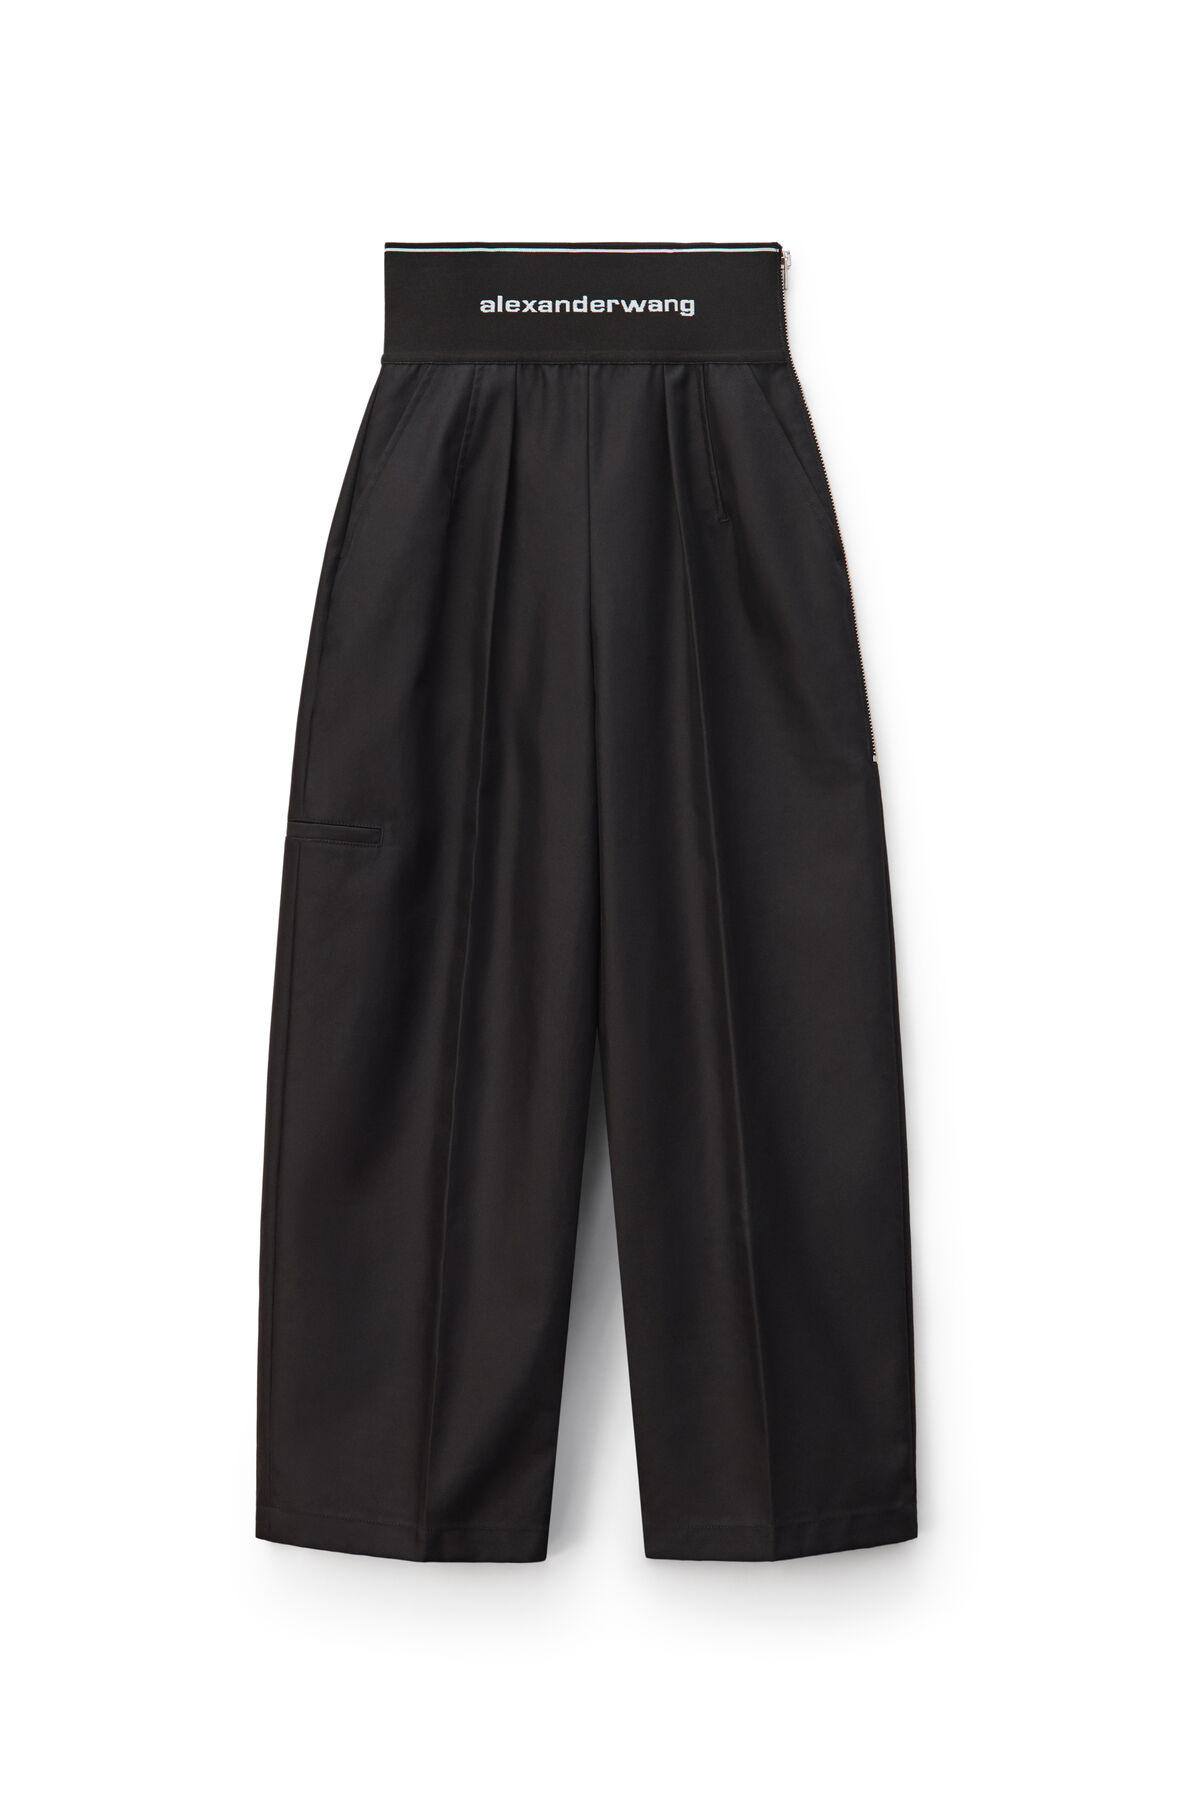 LOGO ELASTIC CARROT PANT by Alexander Wang, available on alexanderwang.com for $570 Kylie Jenner Pants SIMILAR PRODUCT